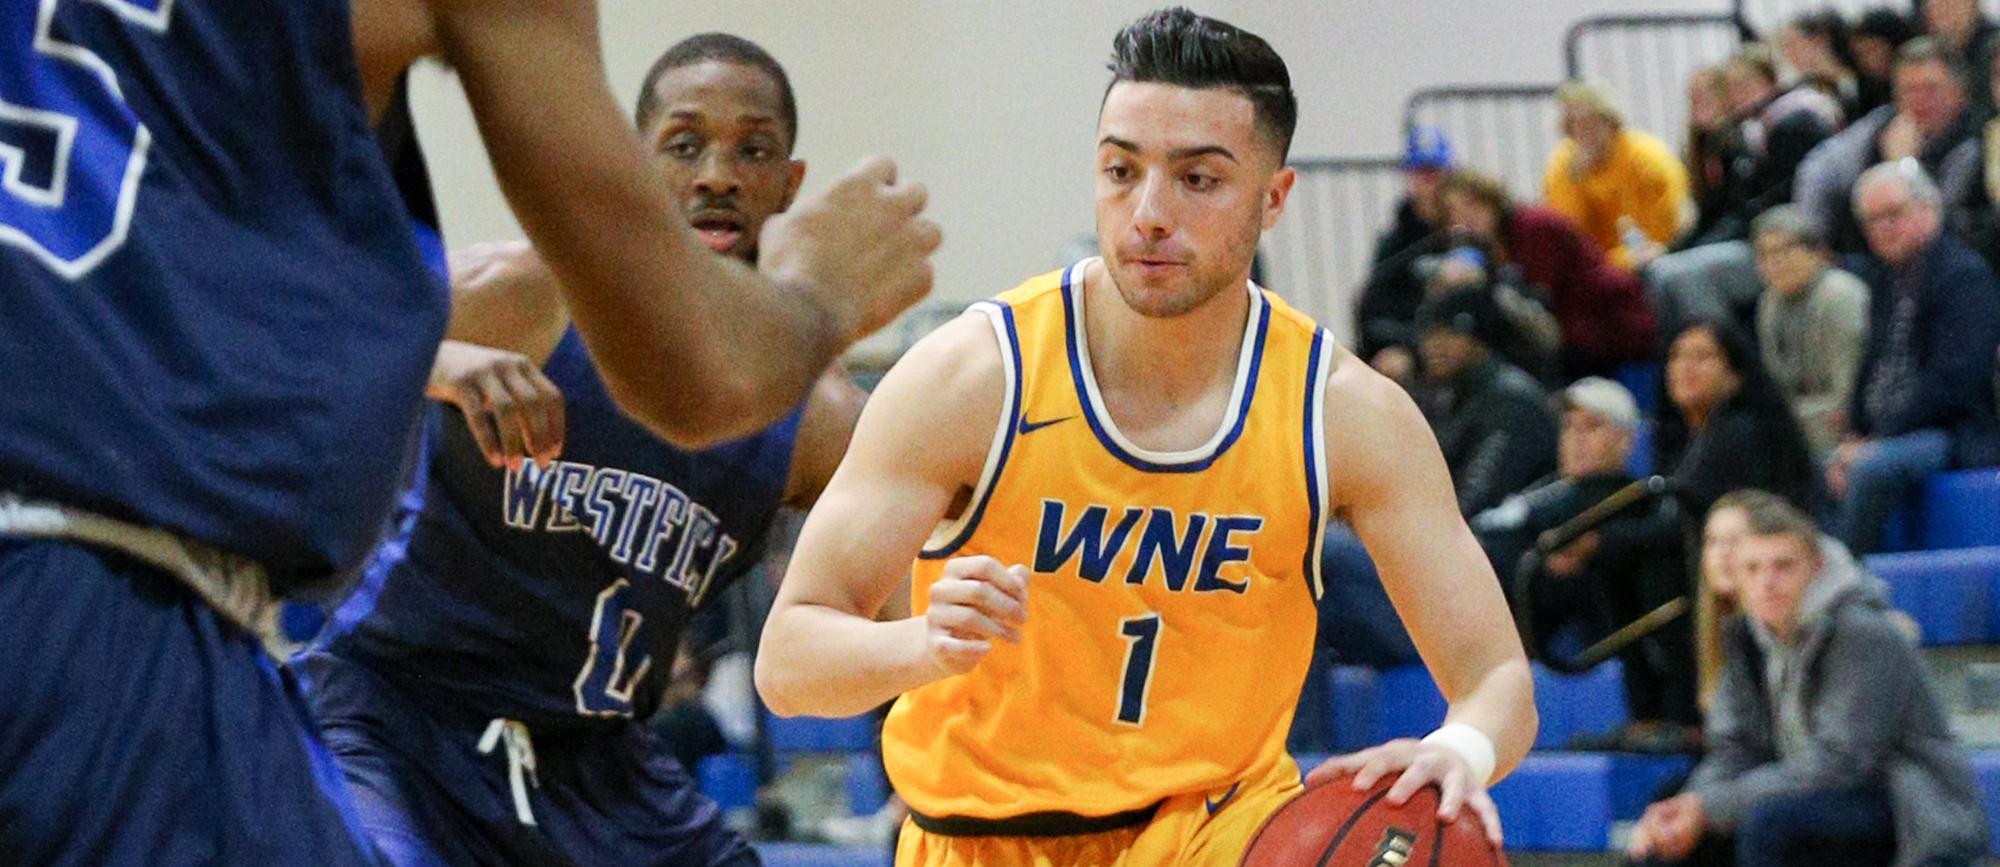 Nick DeGennaro scored a career-high 15 points in Western New England's 85-76 win over Salve Regina on Wednesday night. (Photo by Chris Marion)